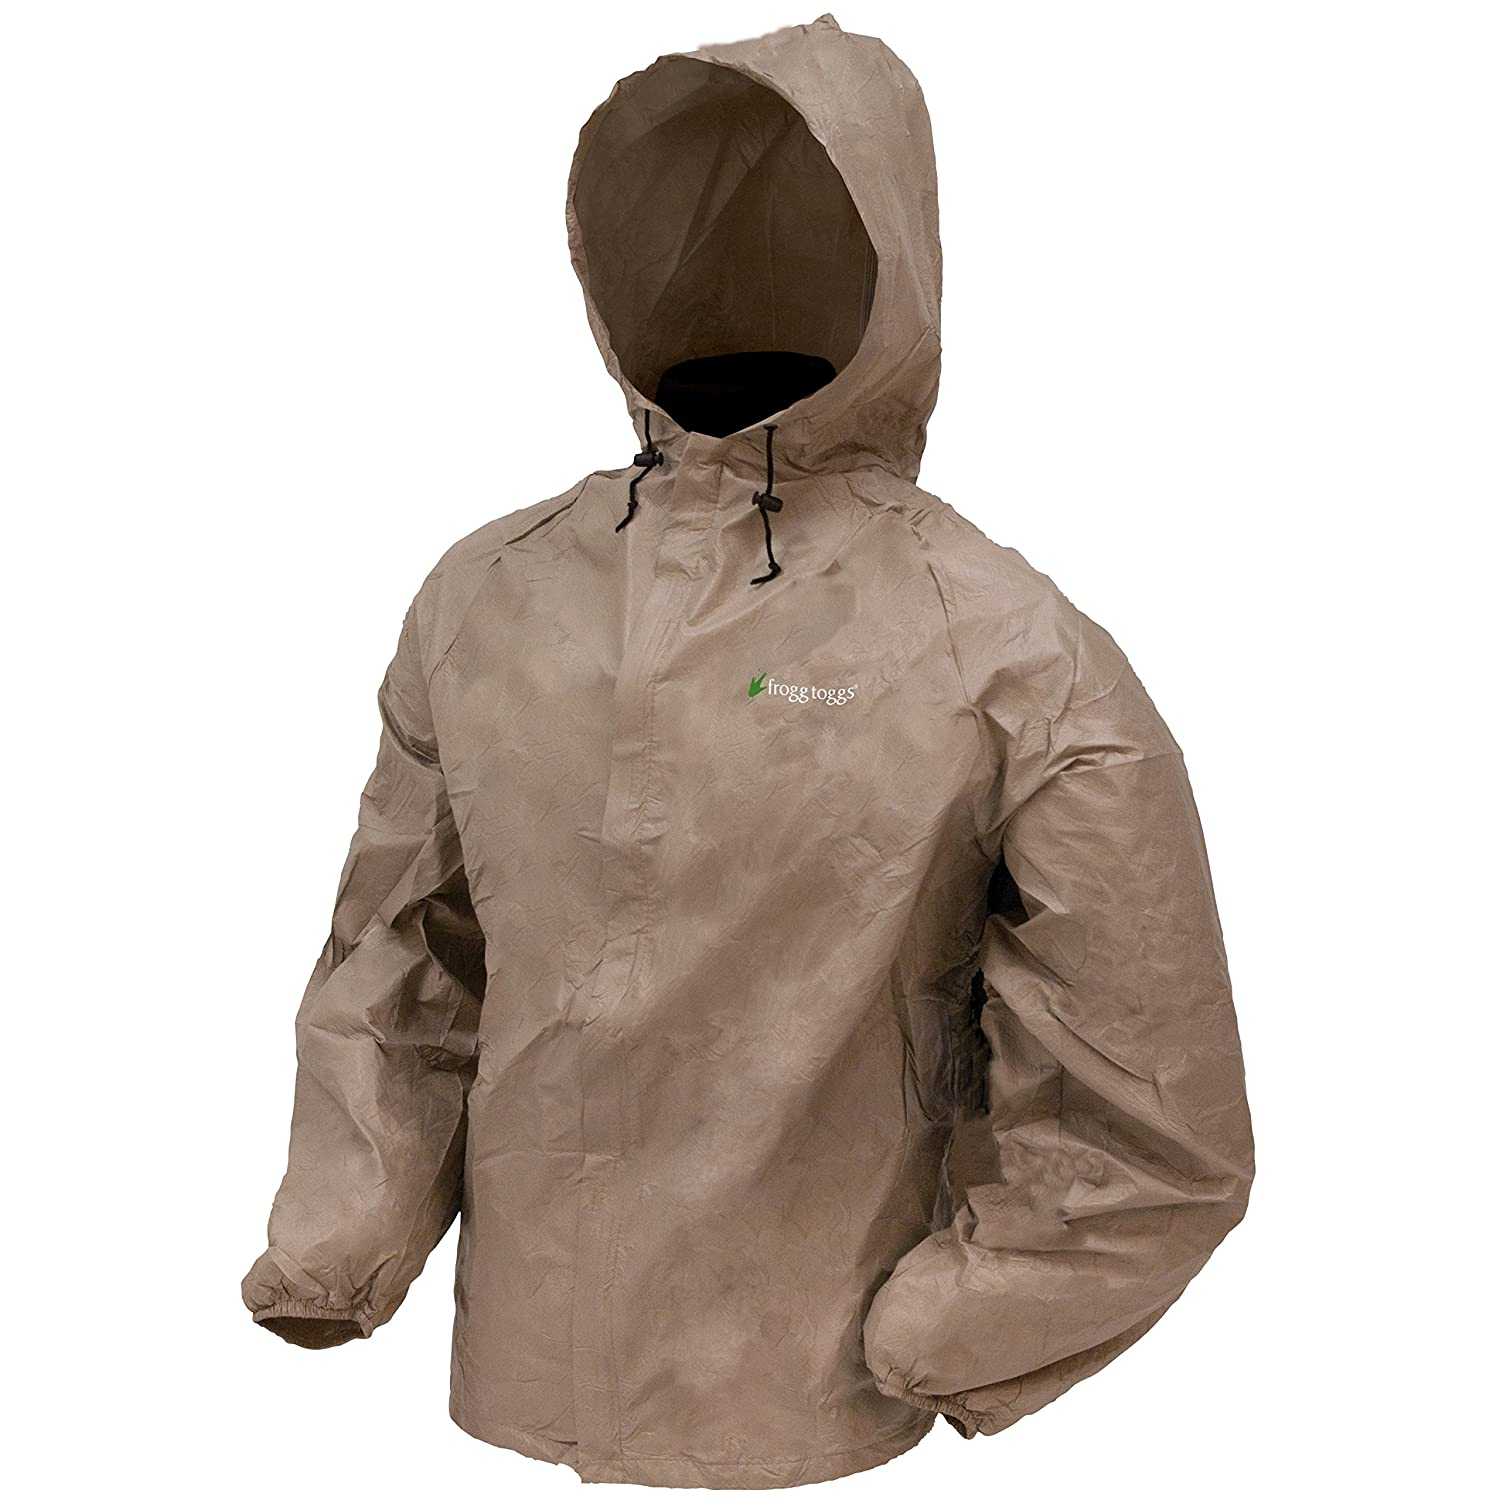 Frogg Toggs Ultra-Lite2 Rain Jacket Frogg Toggs Apparel UL62104-P